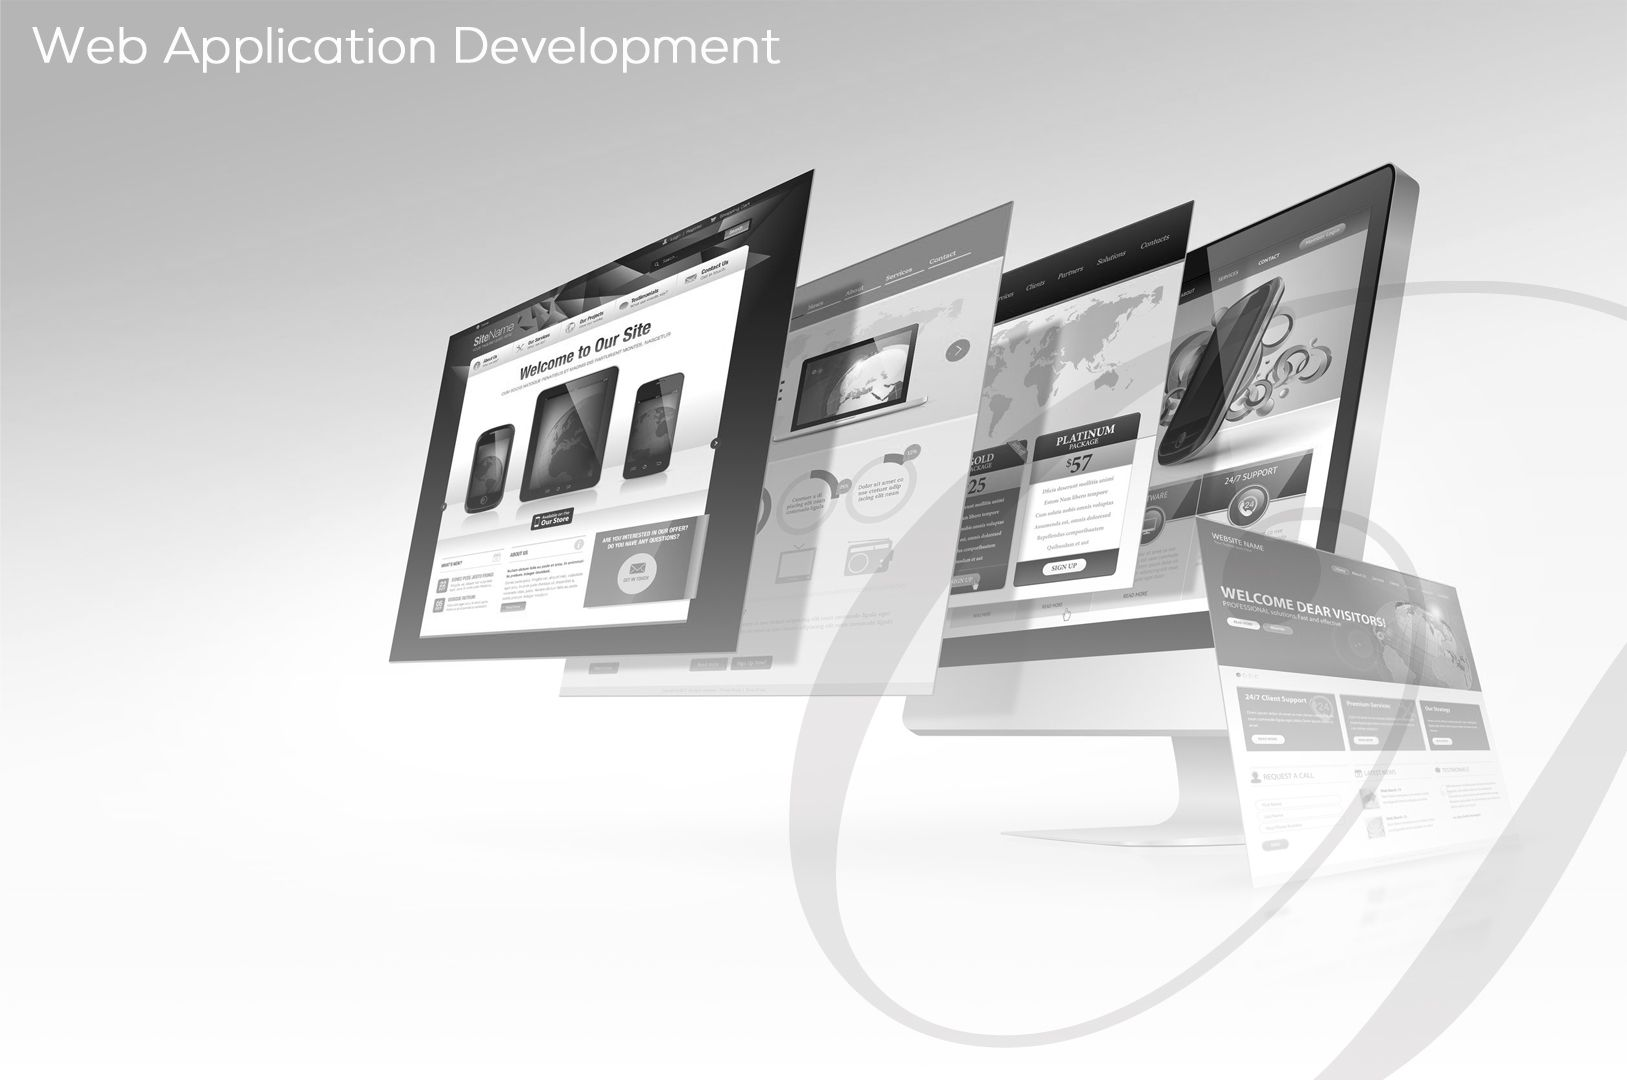 Responsive Web Development Services From An Award Winning: Website Development Services Digital Image Is Leading Web